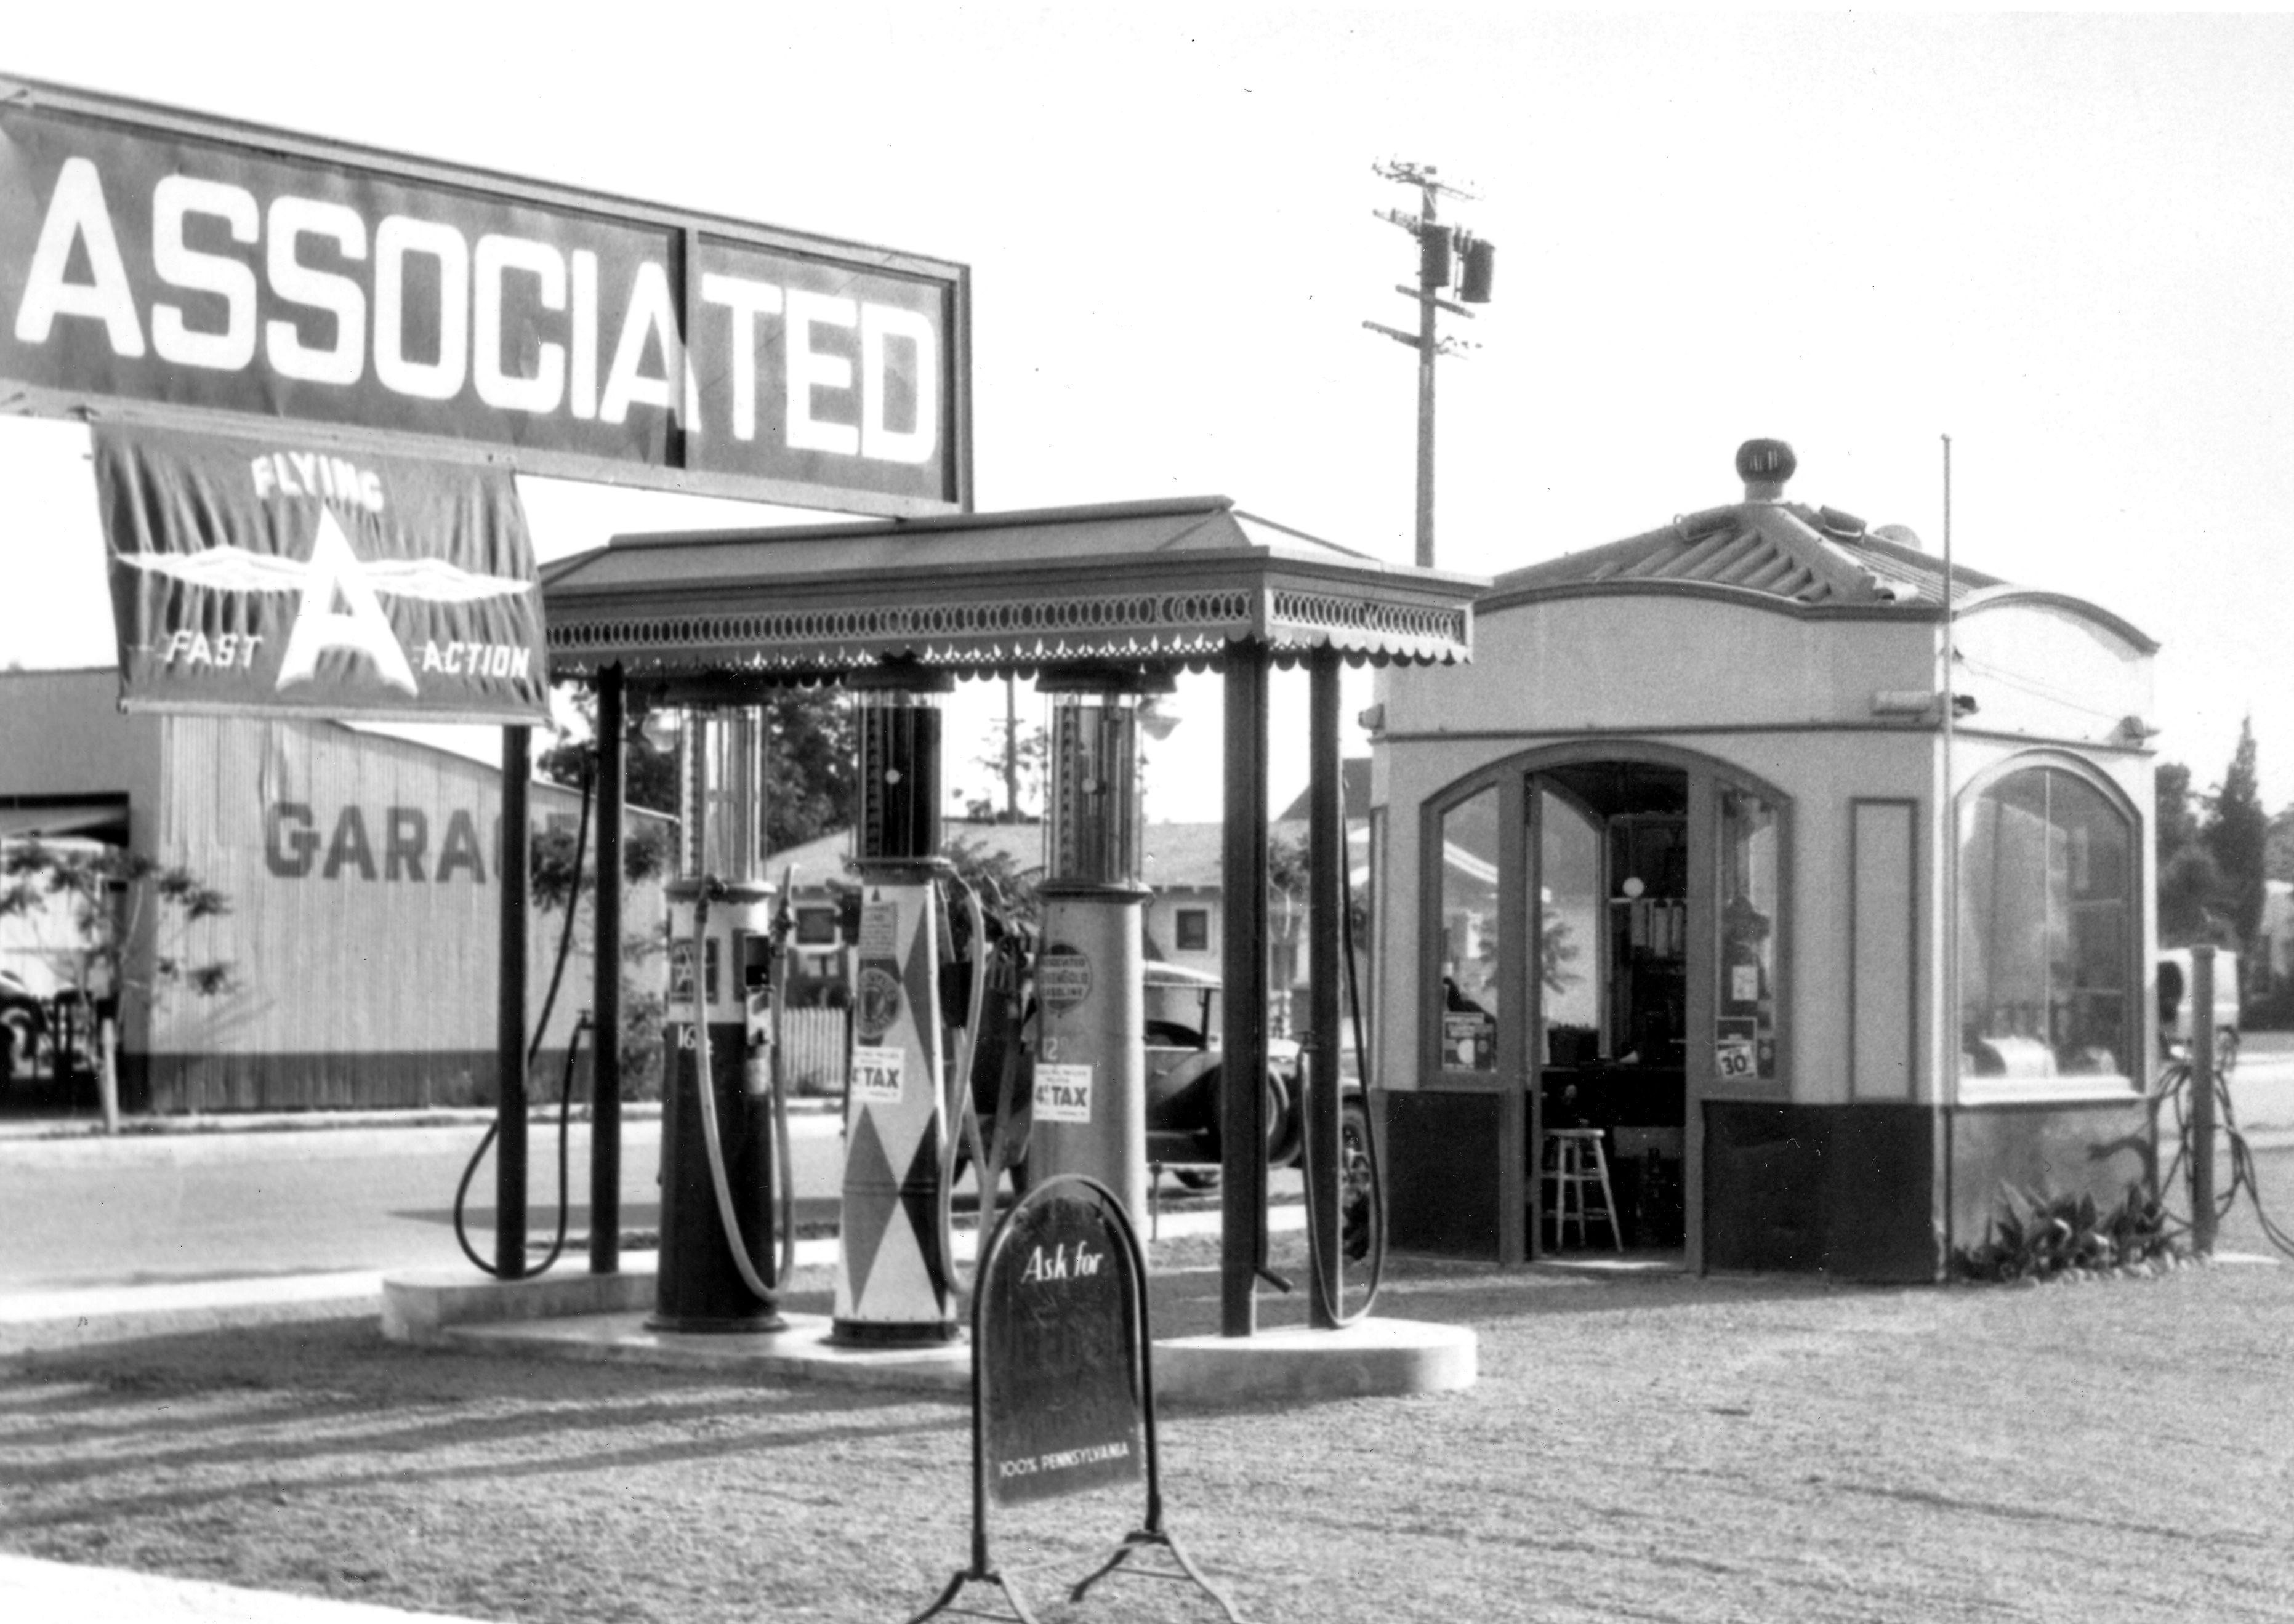 This Flying A service station was typical of the 1920s